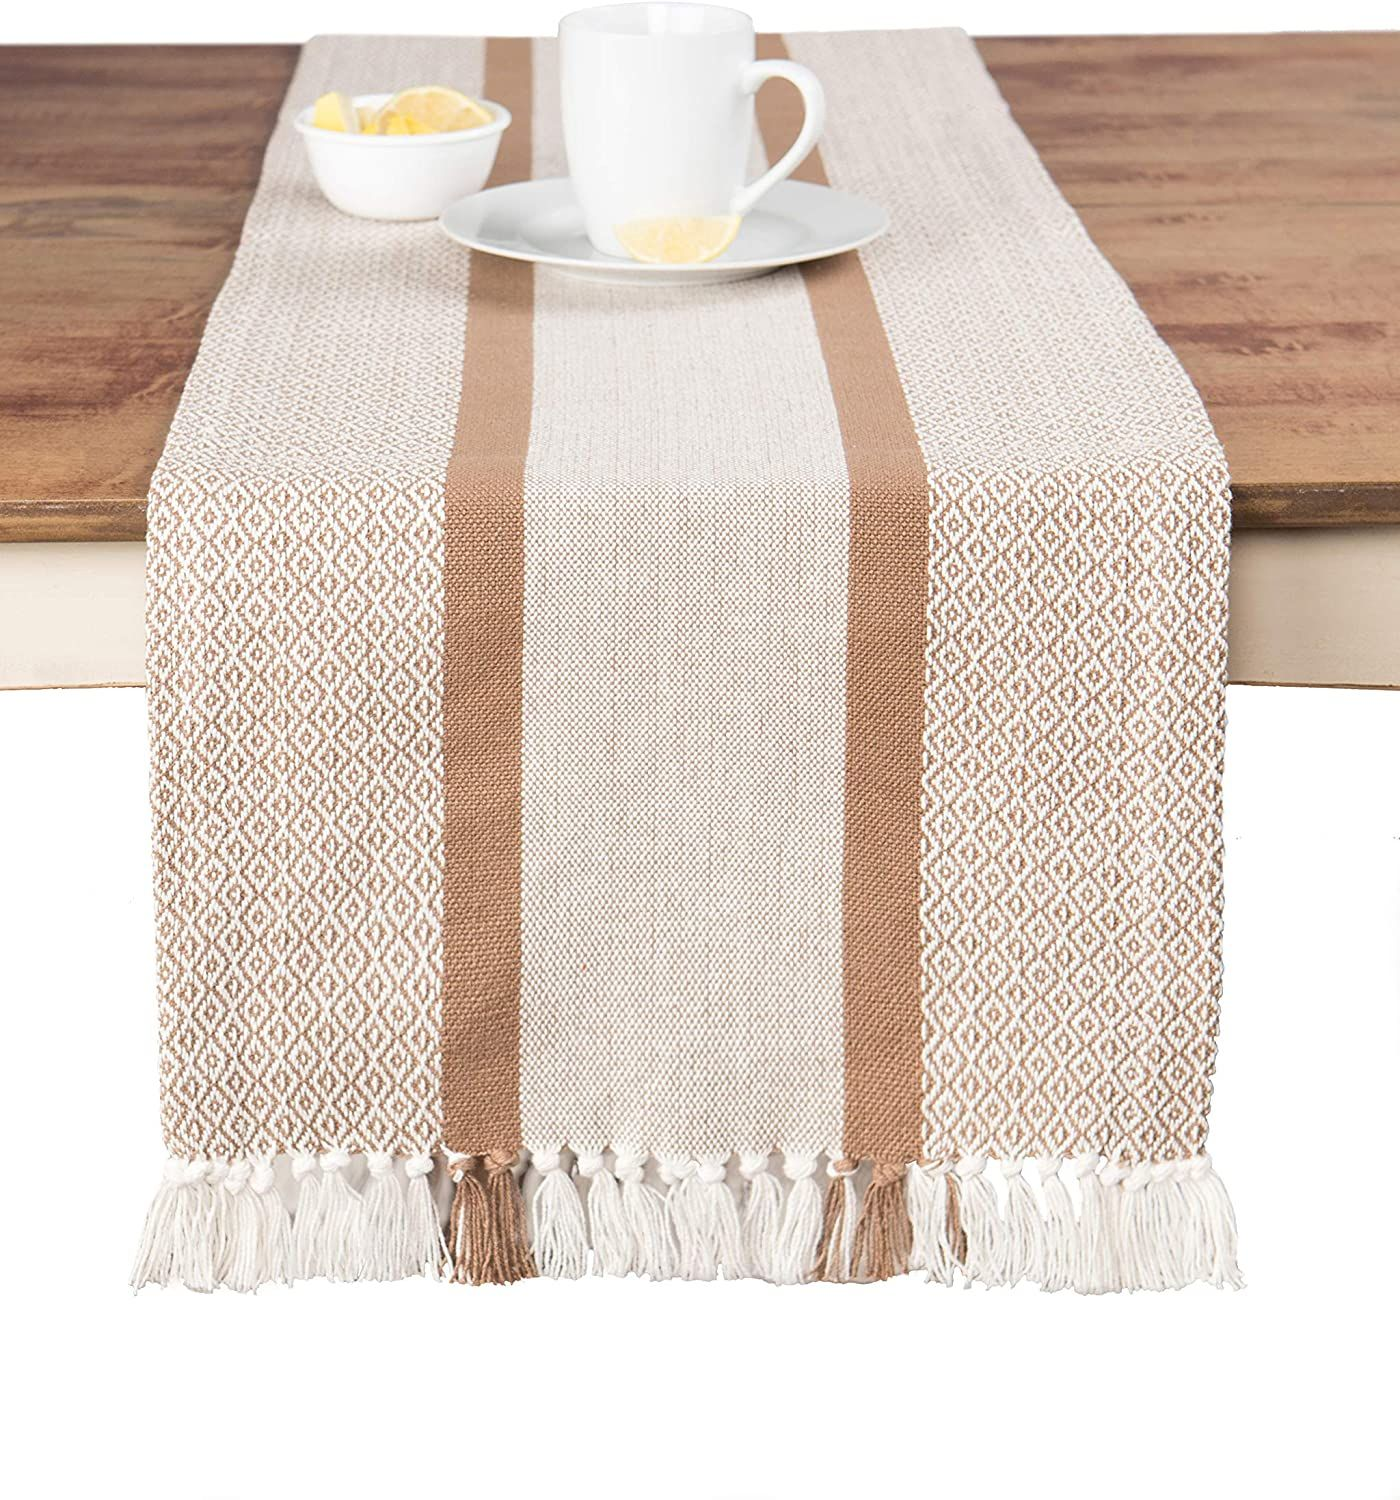 Photo of Sticky Toffee Cotton Woven Table Runner with Fringe, Traditional Diamond, 14 x 72 – Tan Traditional Diamond